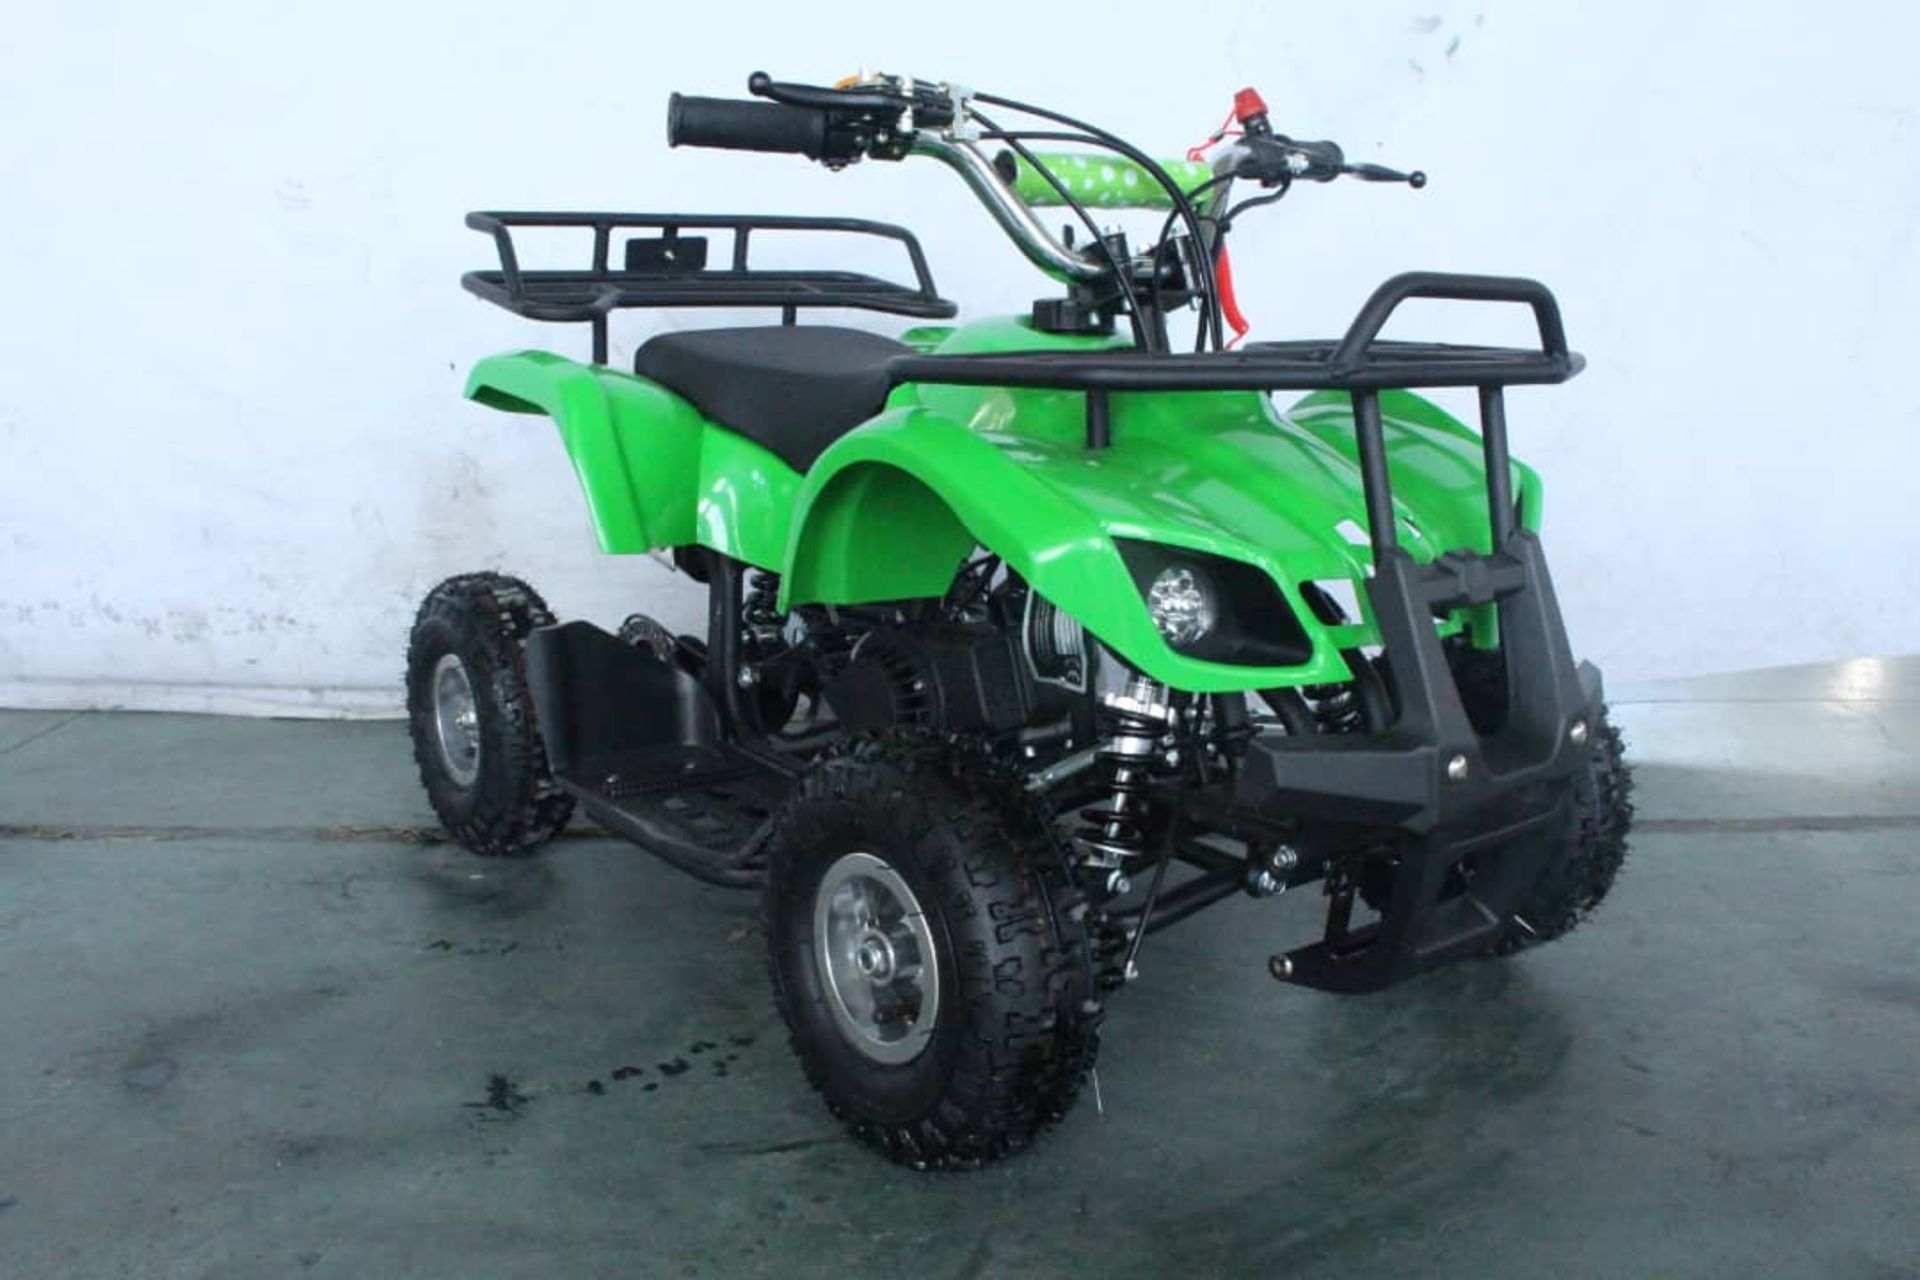 + VAT Brand New 50cc Mini Quad Bike FRM - Colours May Vary - Picture May Vary From Actual Item - Image 6 of 9